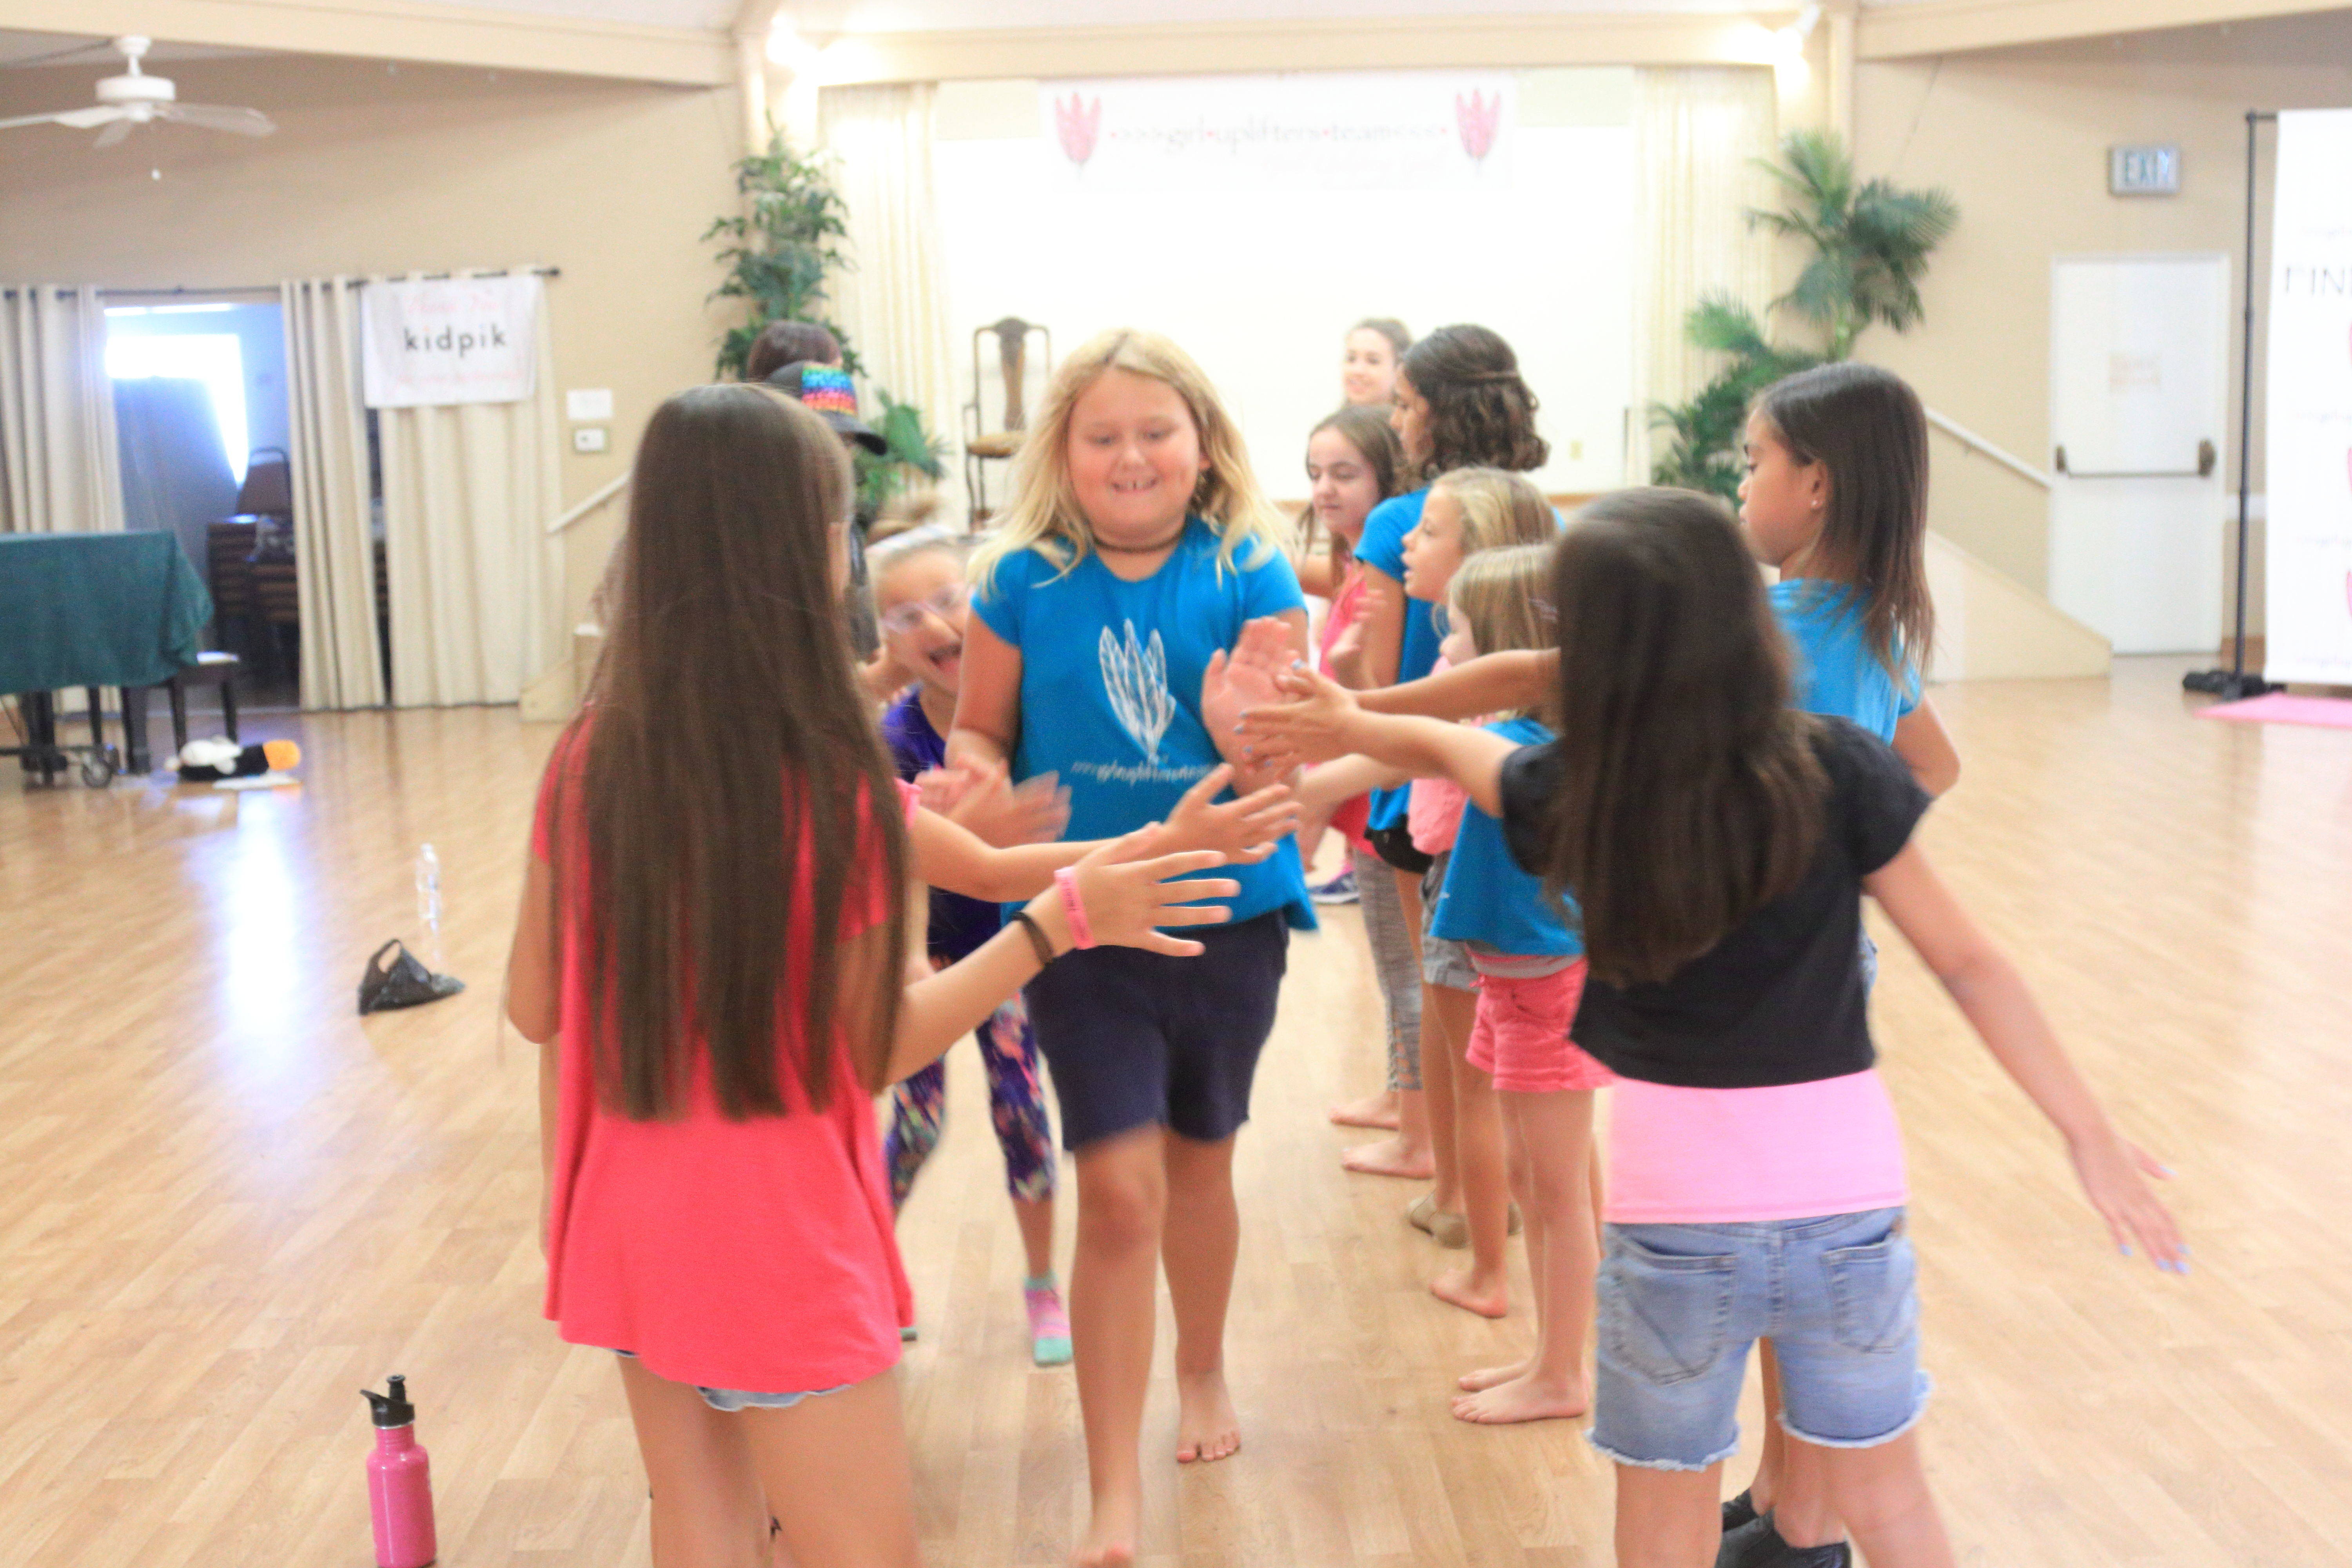 An UPLIFTING CAMP FOR GIRLS Entering Grades 2nd through 6th! Dates: July 8th - July 12th! (Limited Spots)